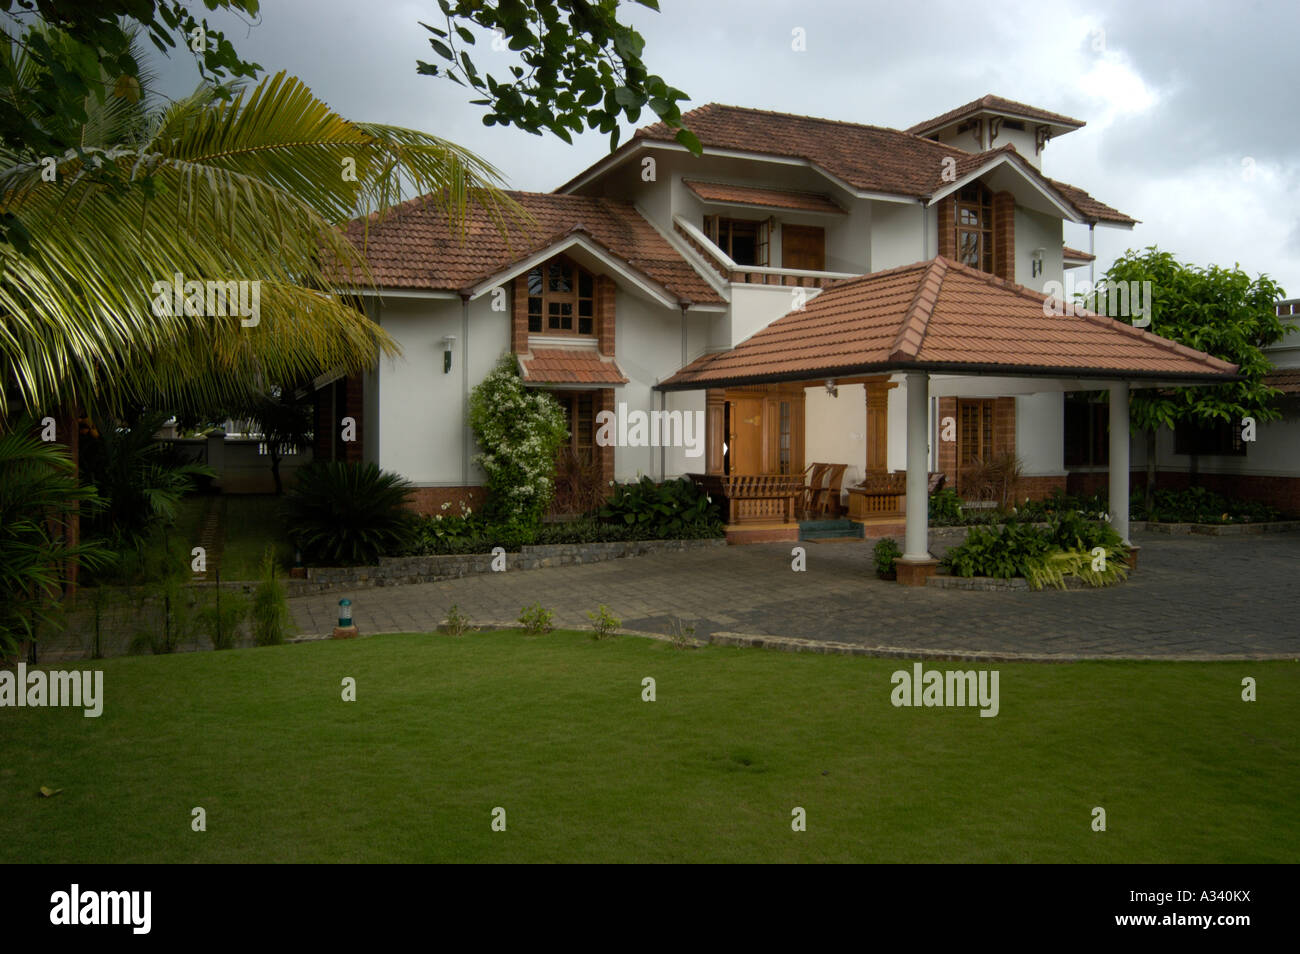 Modern and traditional big house in kerala hd image for Traditional and modern houses